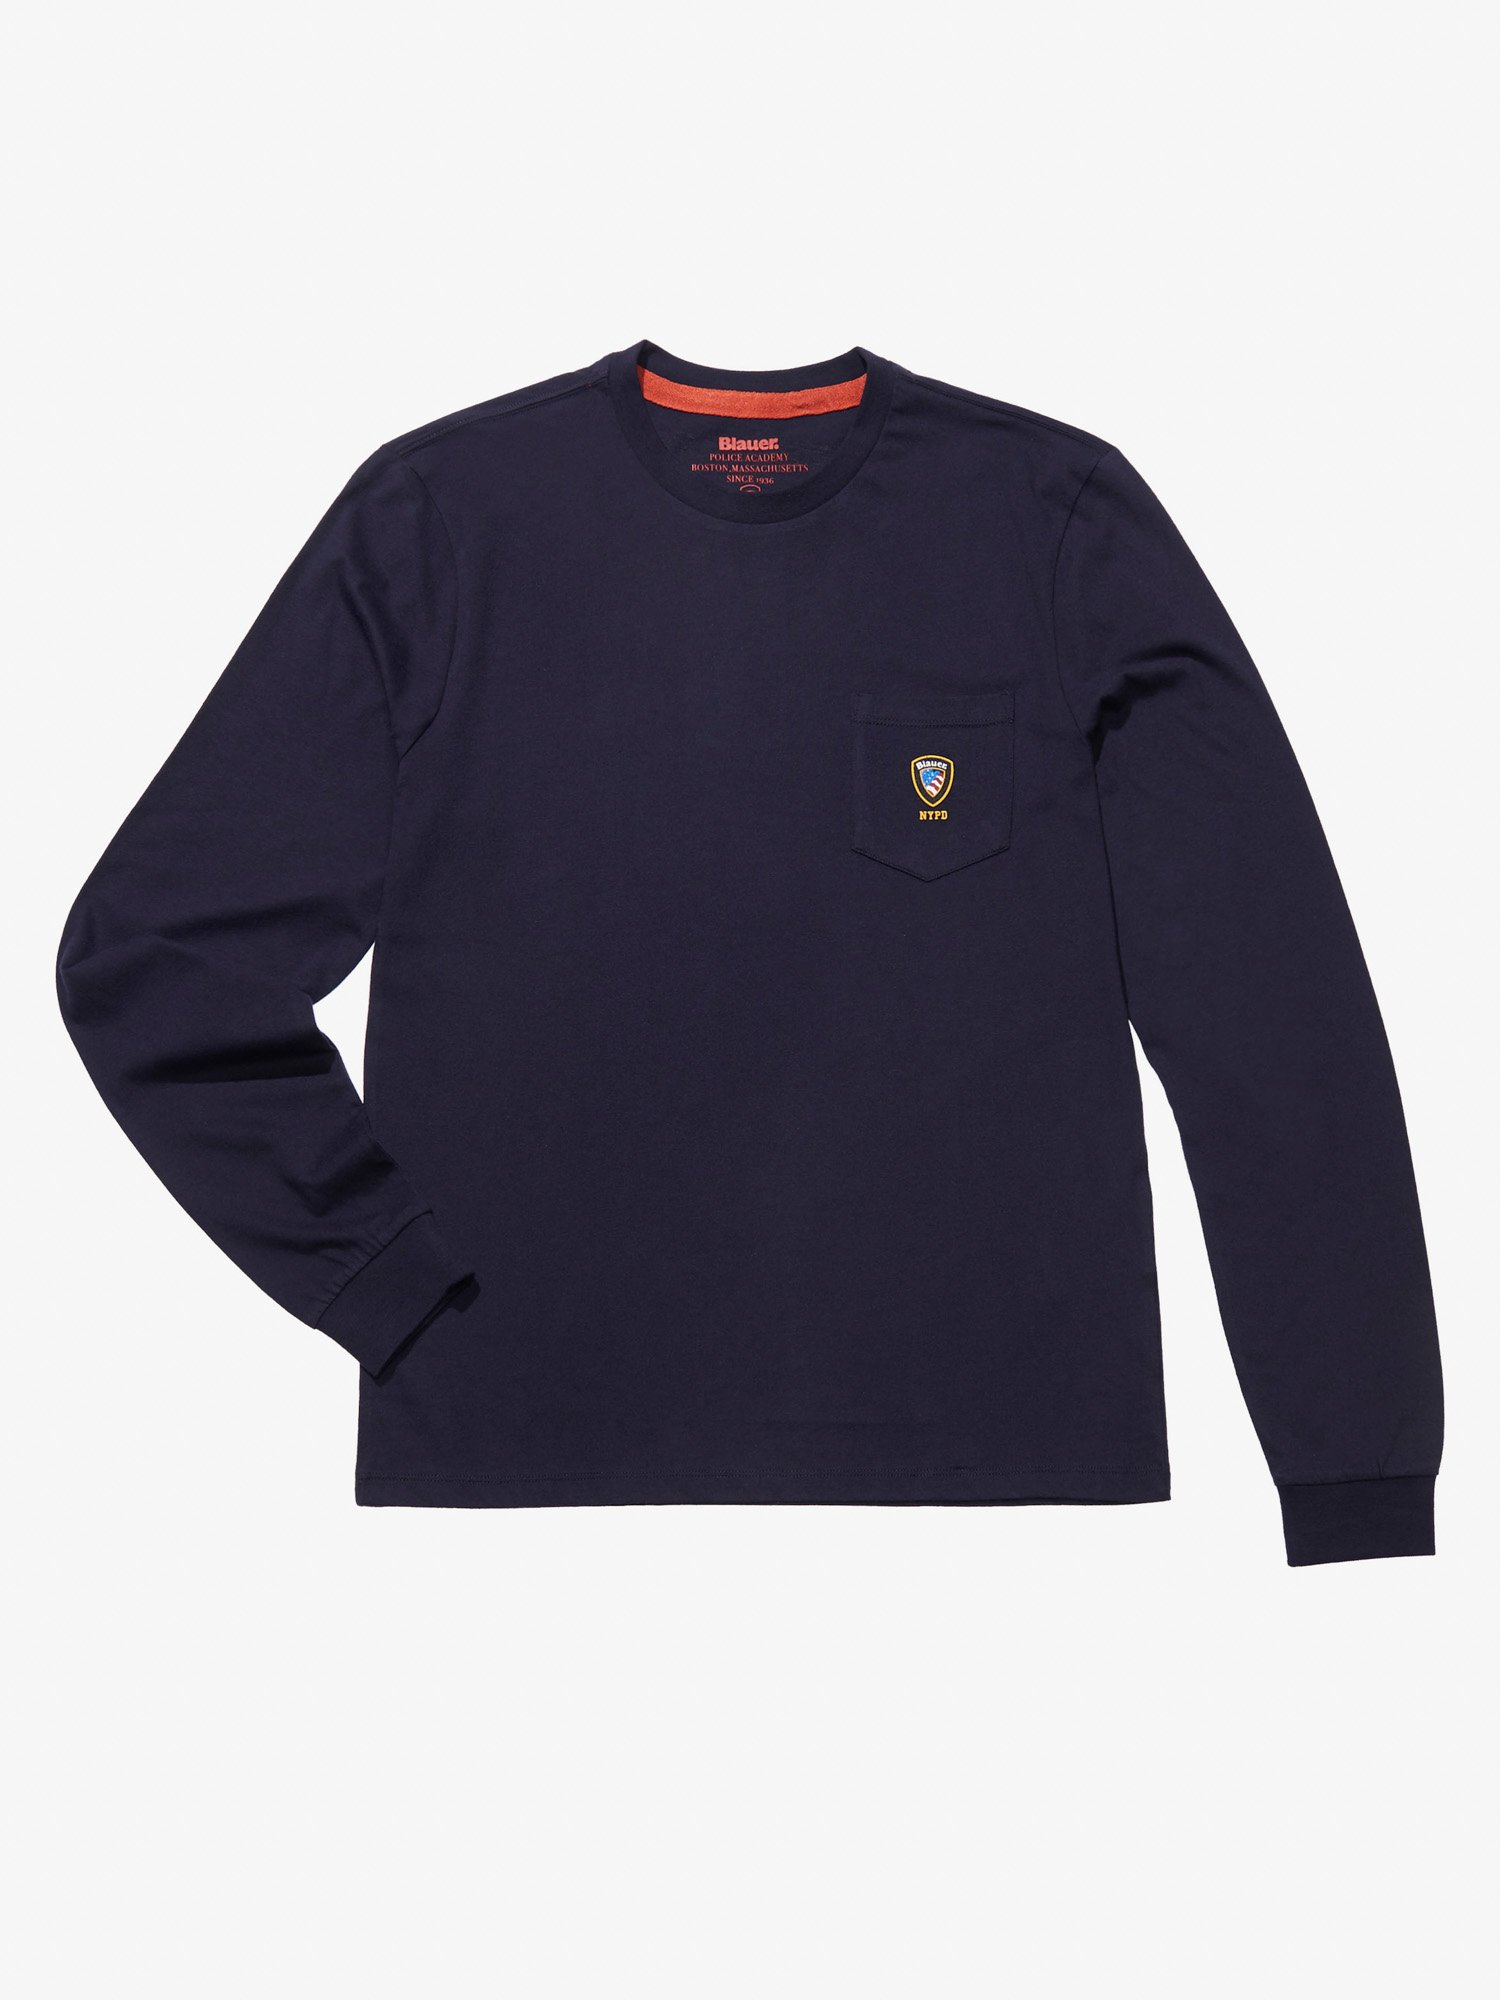 MAGLIA NYPD IN JERSEY - Blauer